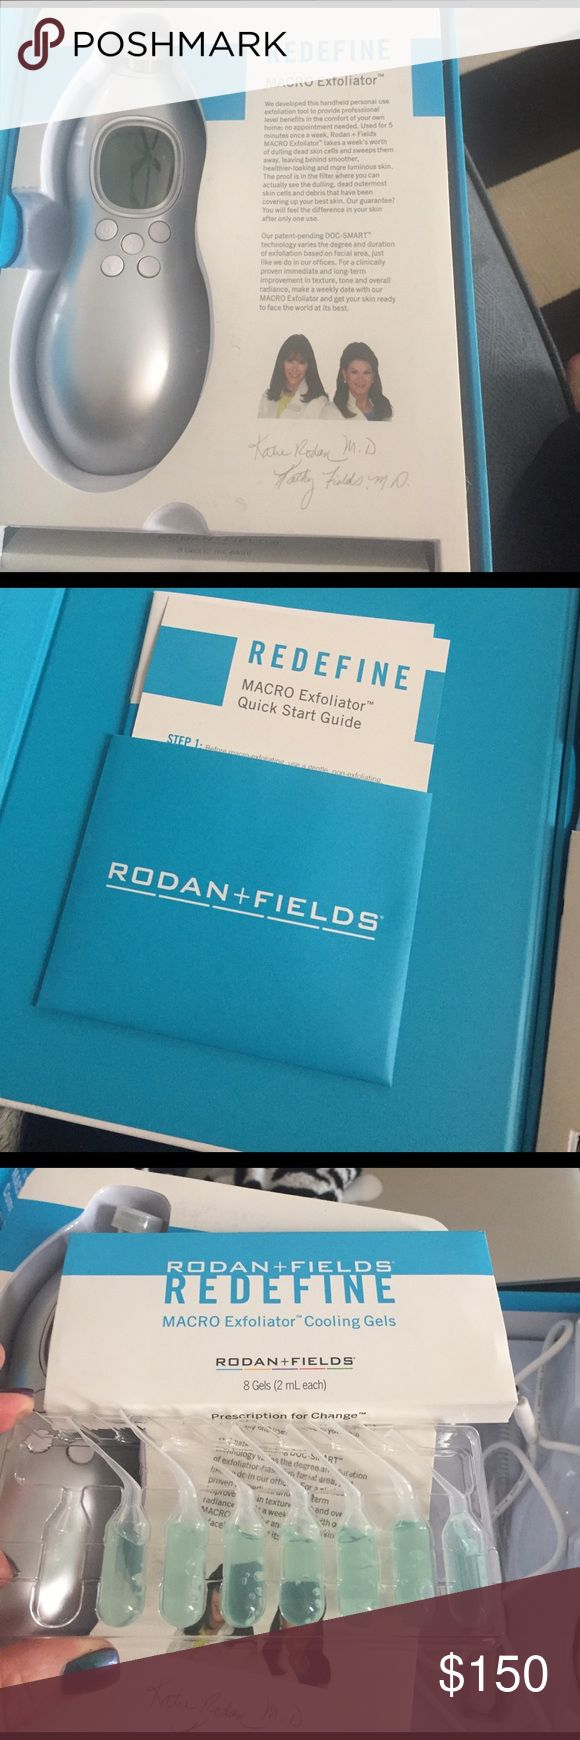 Rodan and fields macro exfoliator Only used one time has everything still boxed up only one cooling gel missing and comes with 4 sealed tips rodan and fields Makeup